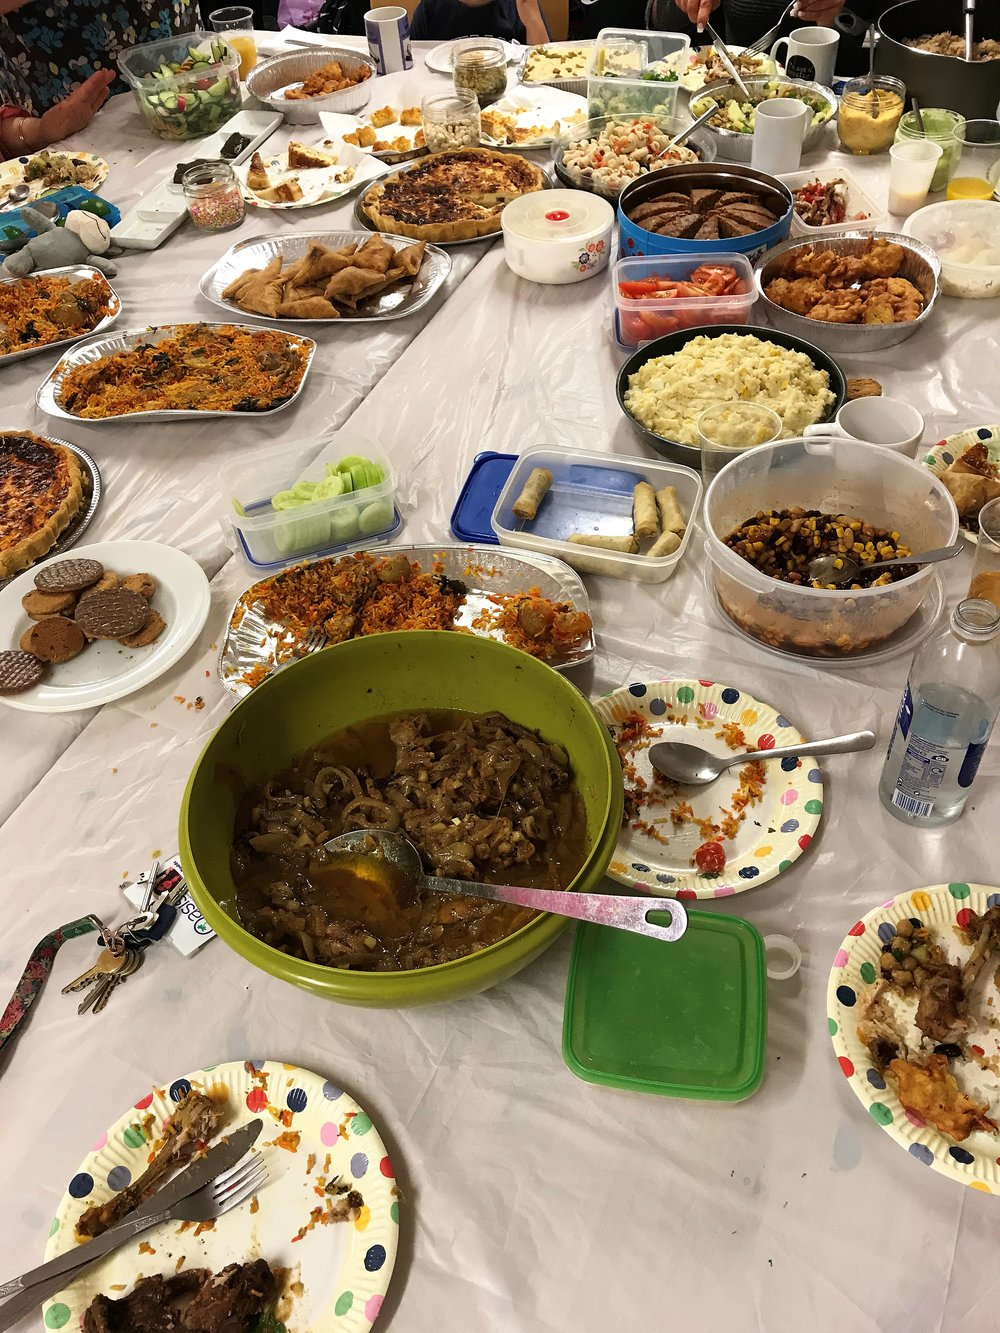 eid food on table 2.jpg